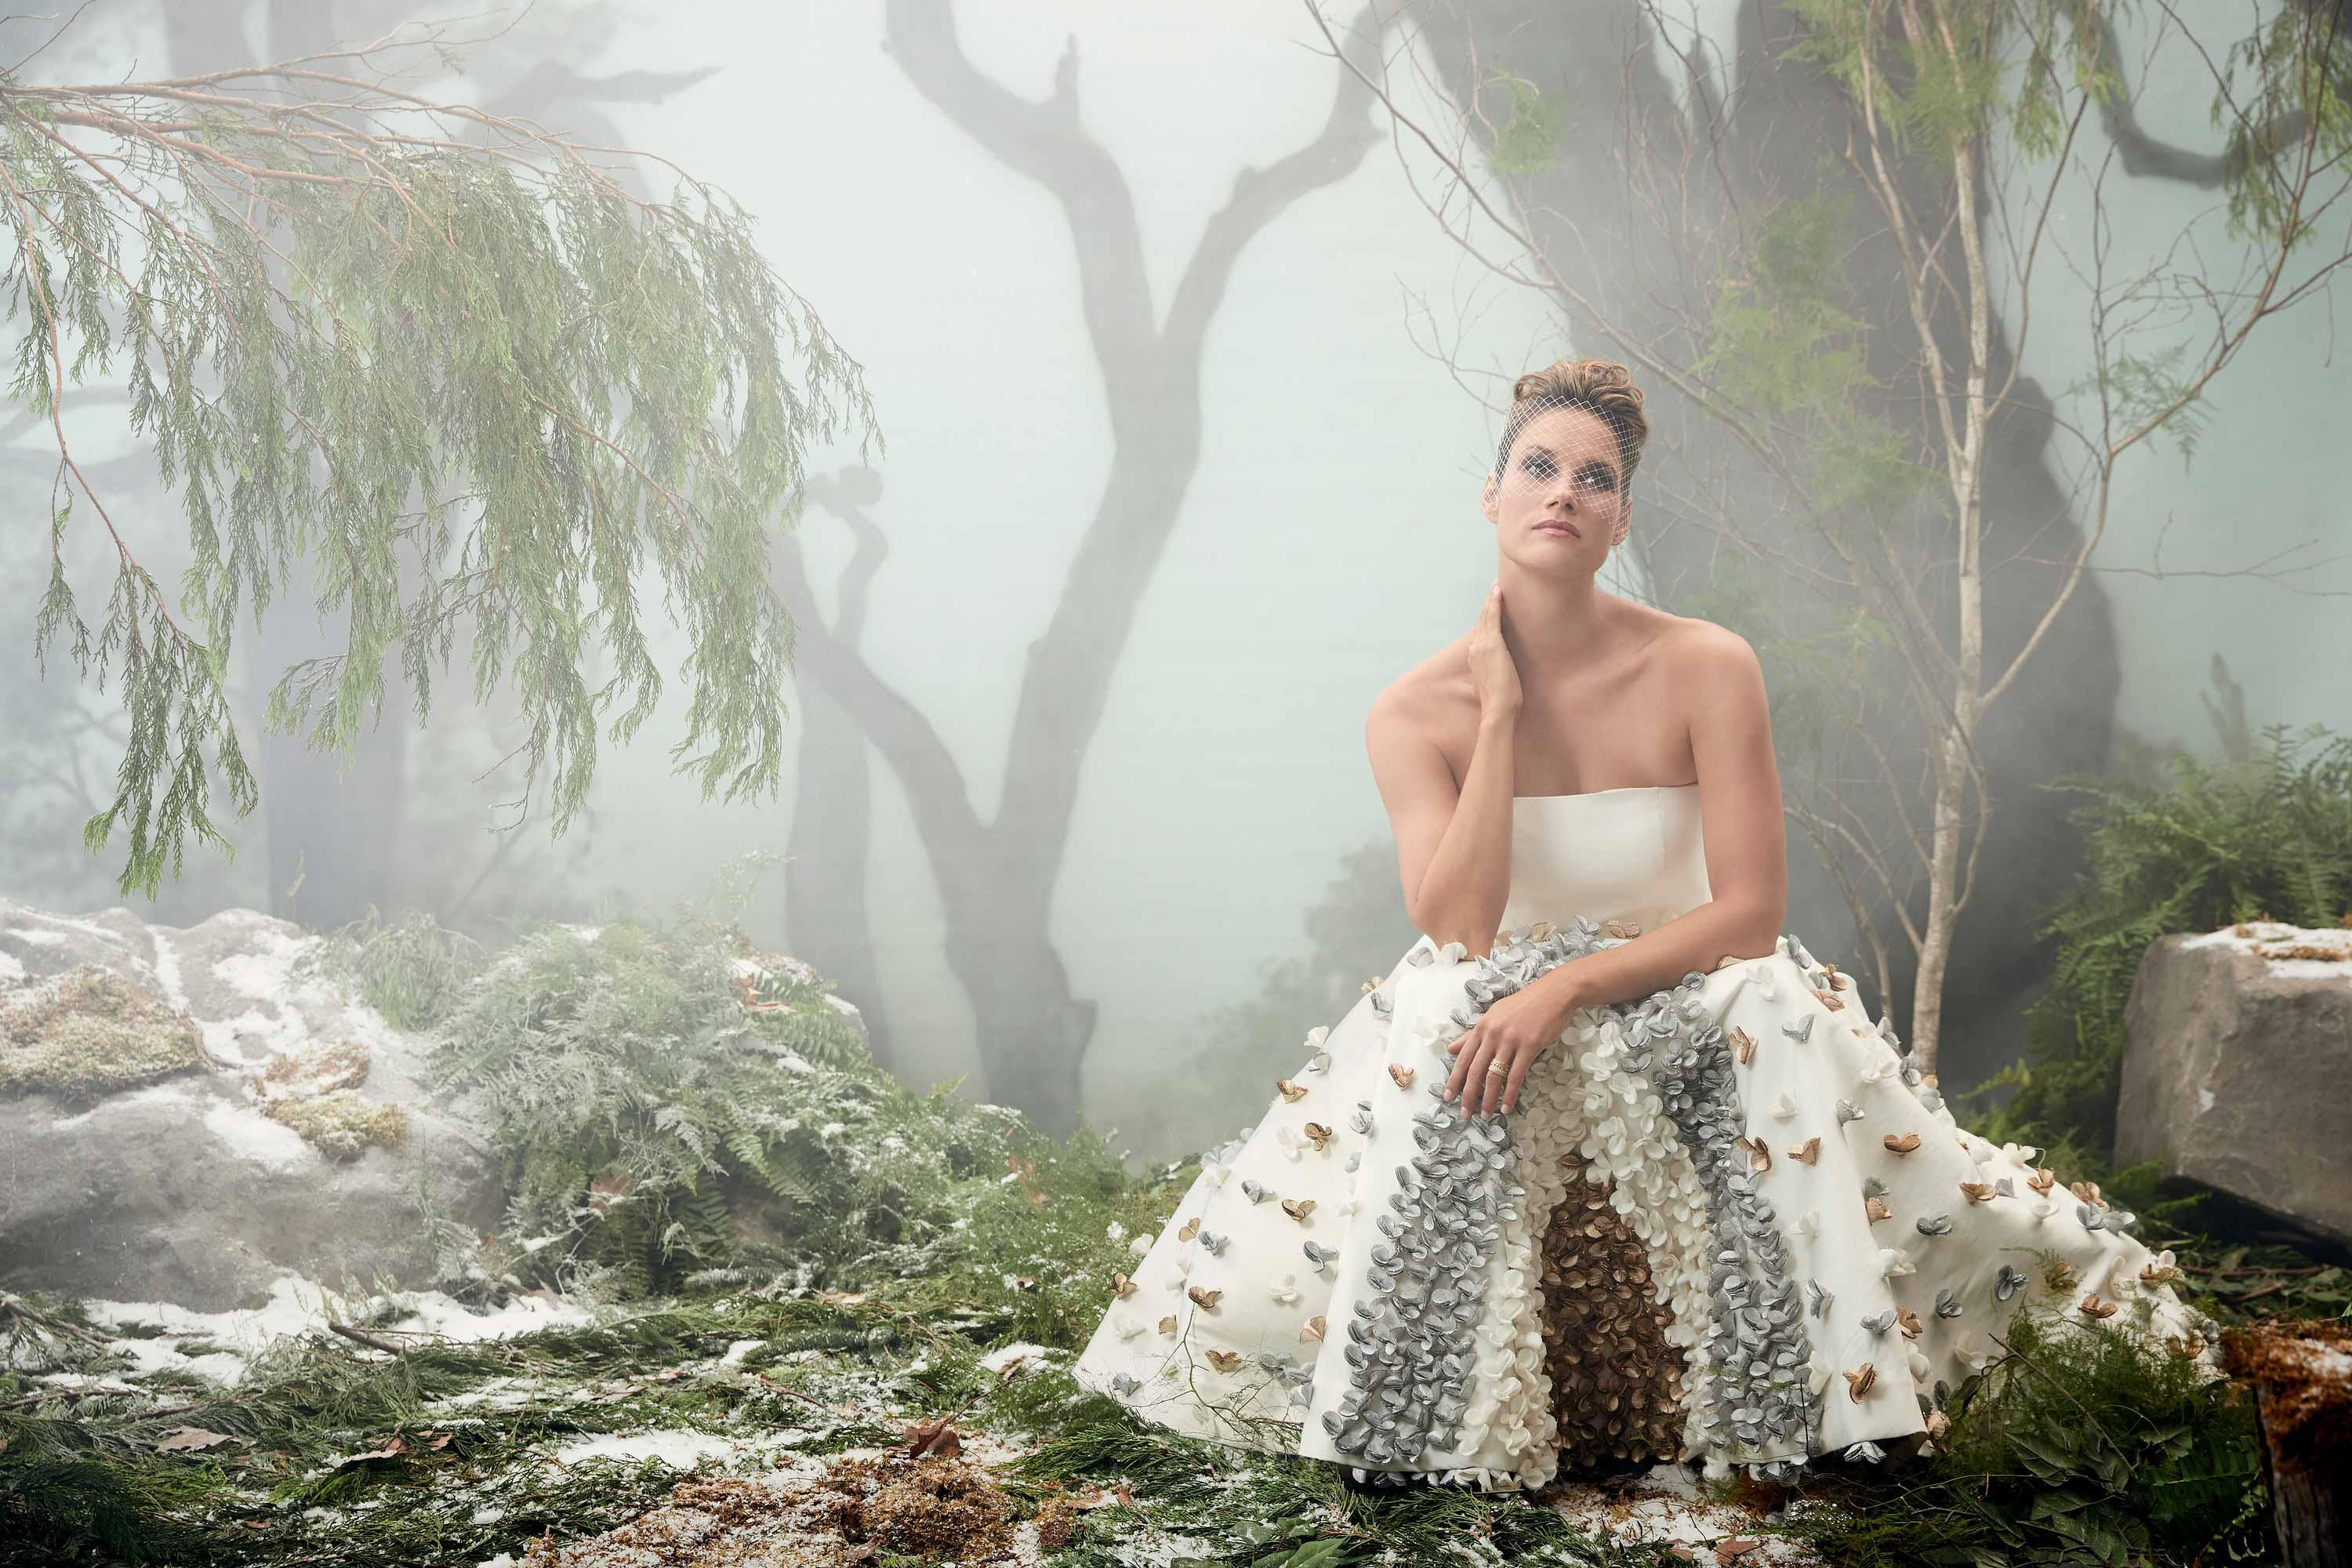 Missy Peregrym poses in a forest setting wearing a strapless white gown with flowers